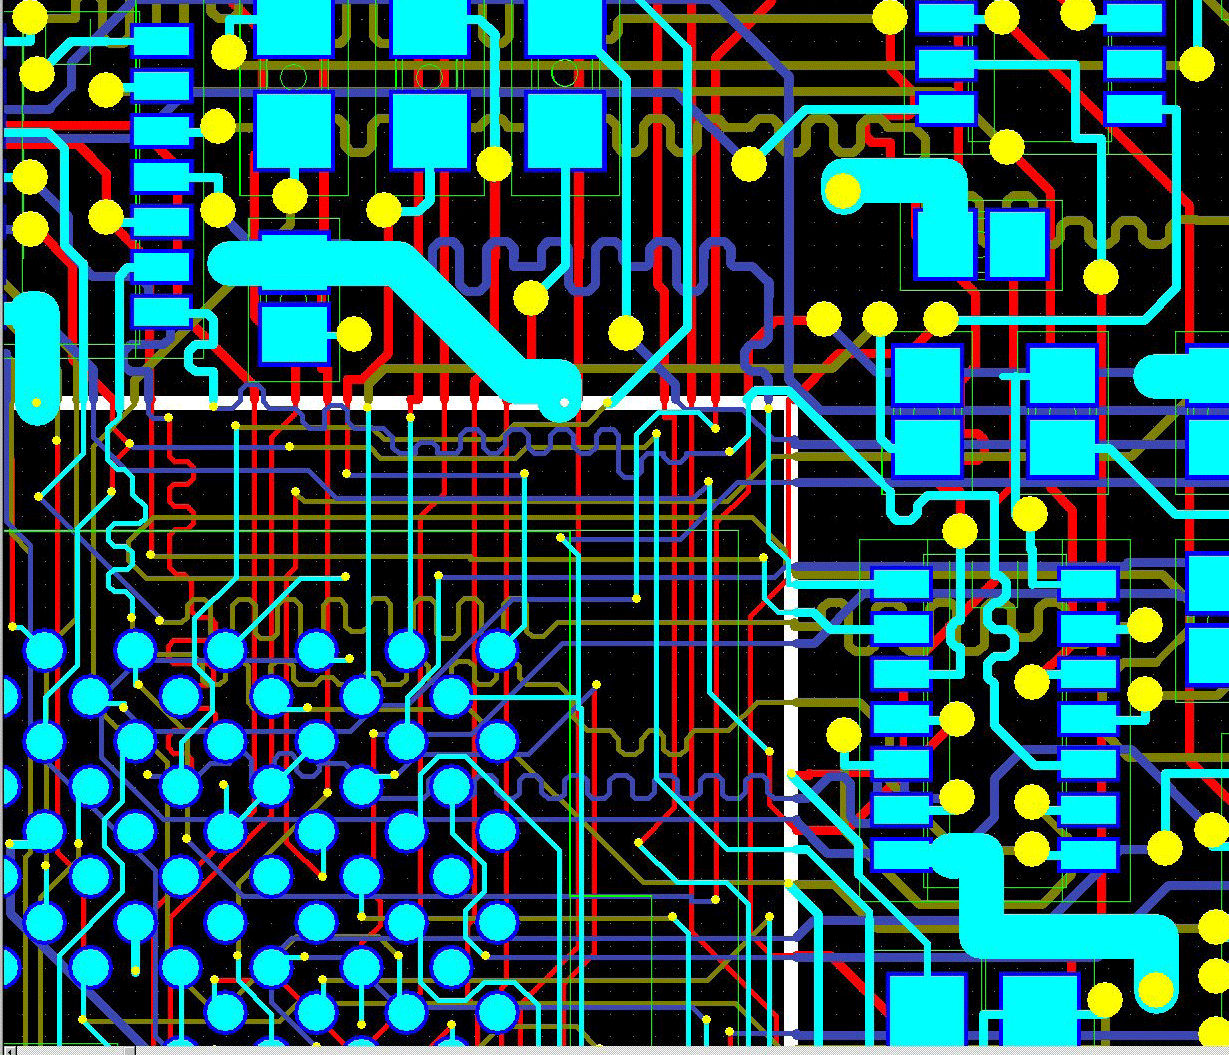 pcb design software cadstar rules by area finished analysis and verification